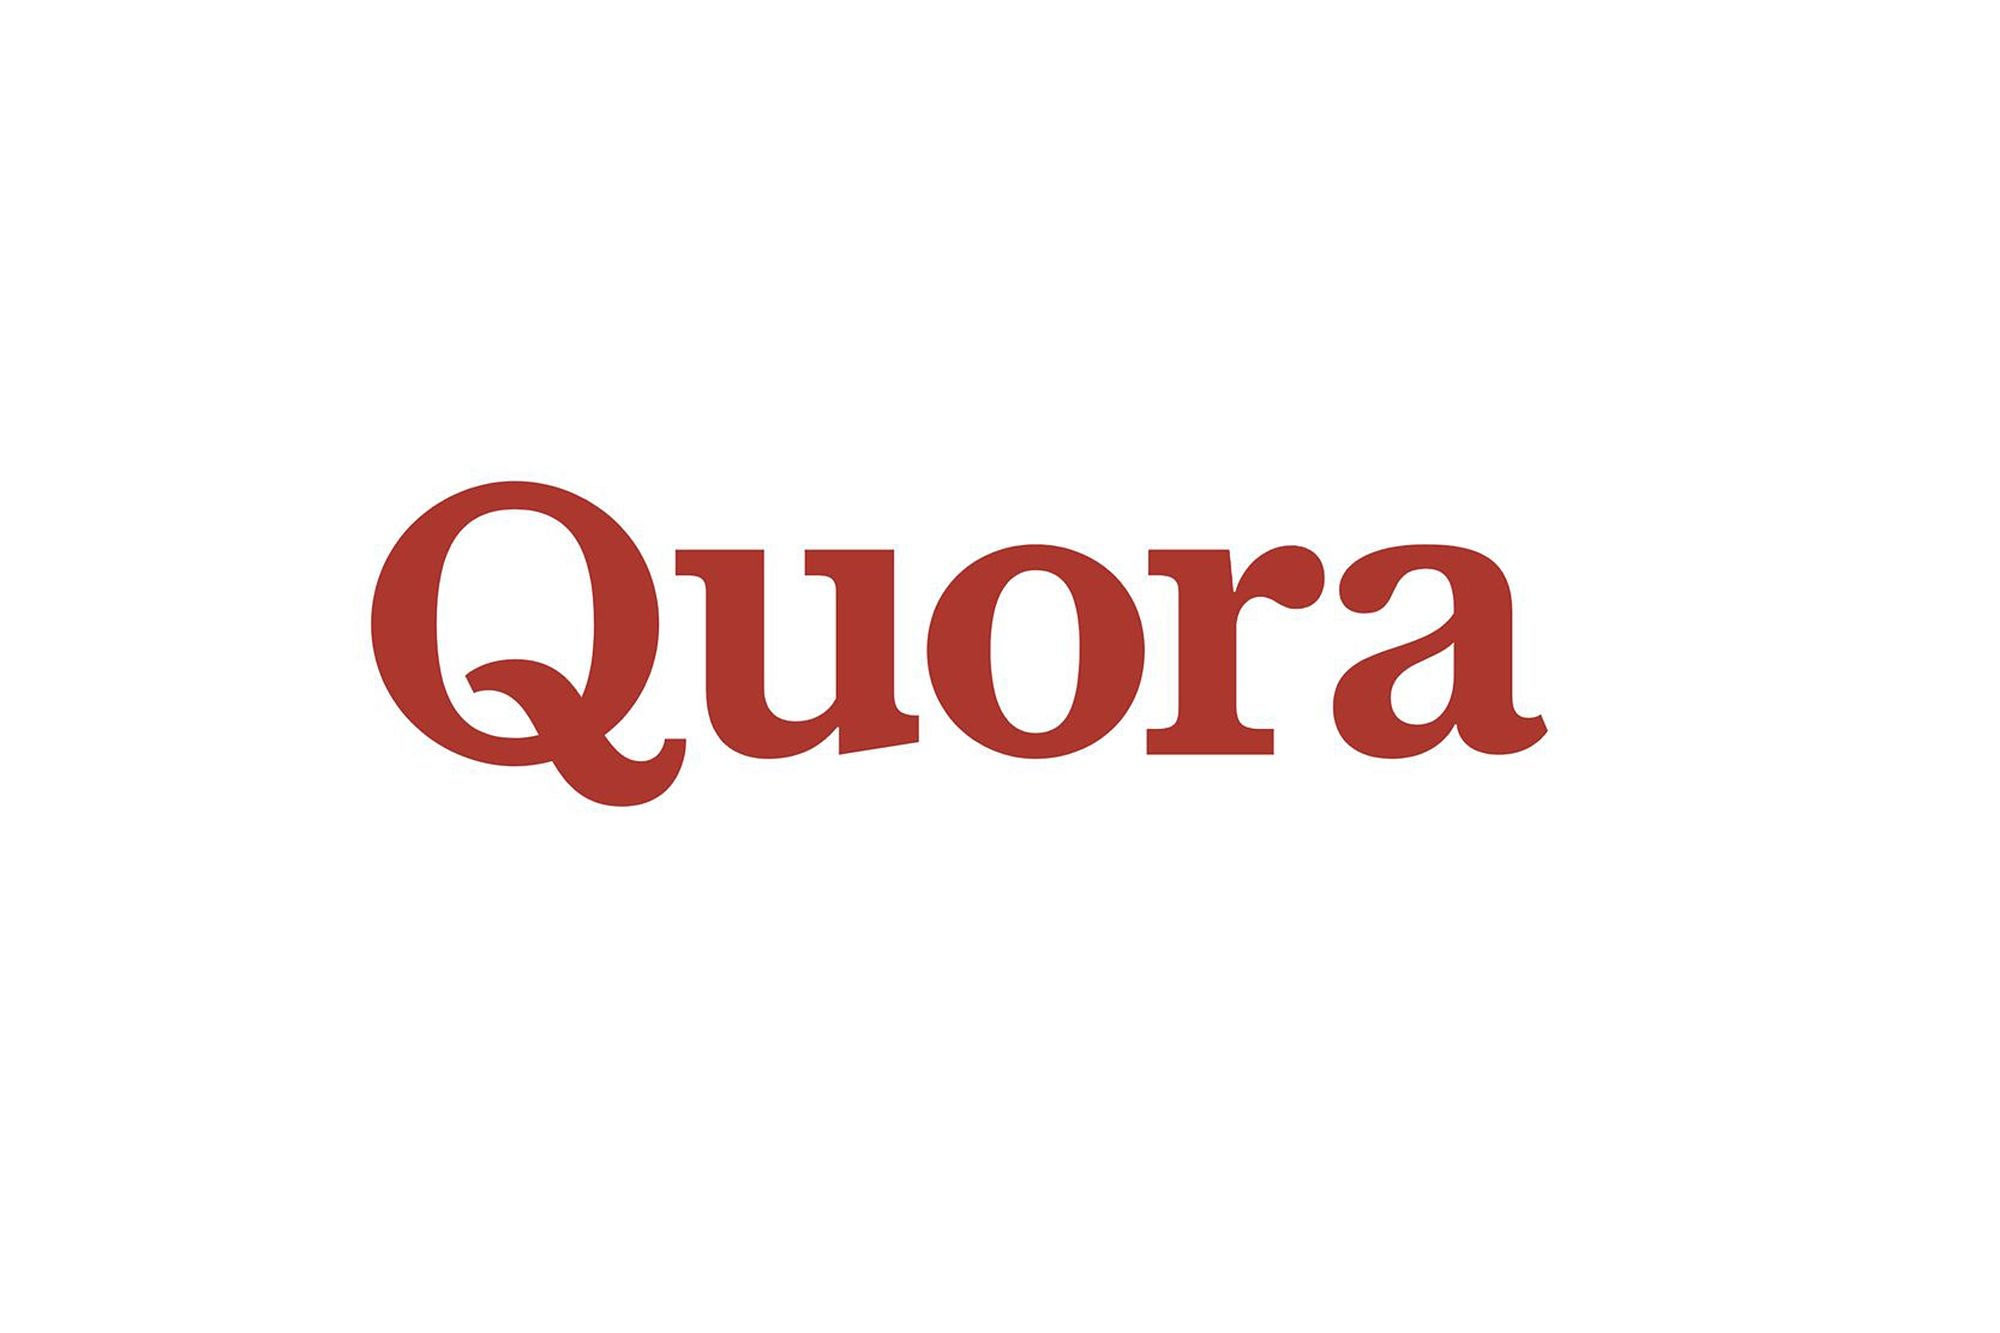 How You Can Use Quora as a Marketing Tool: It's Not Just for Personal Questions Anymore